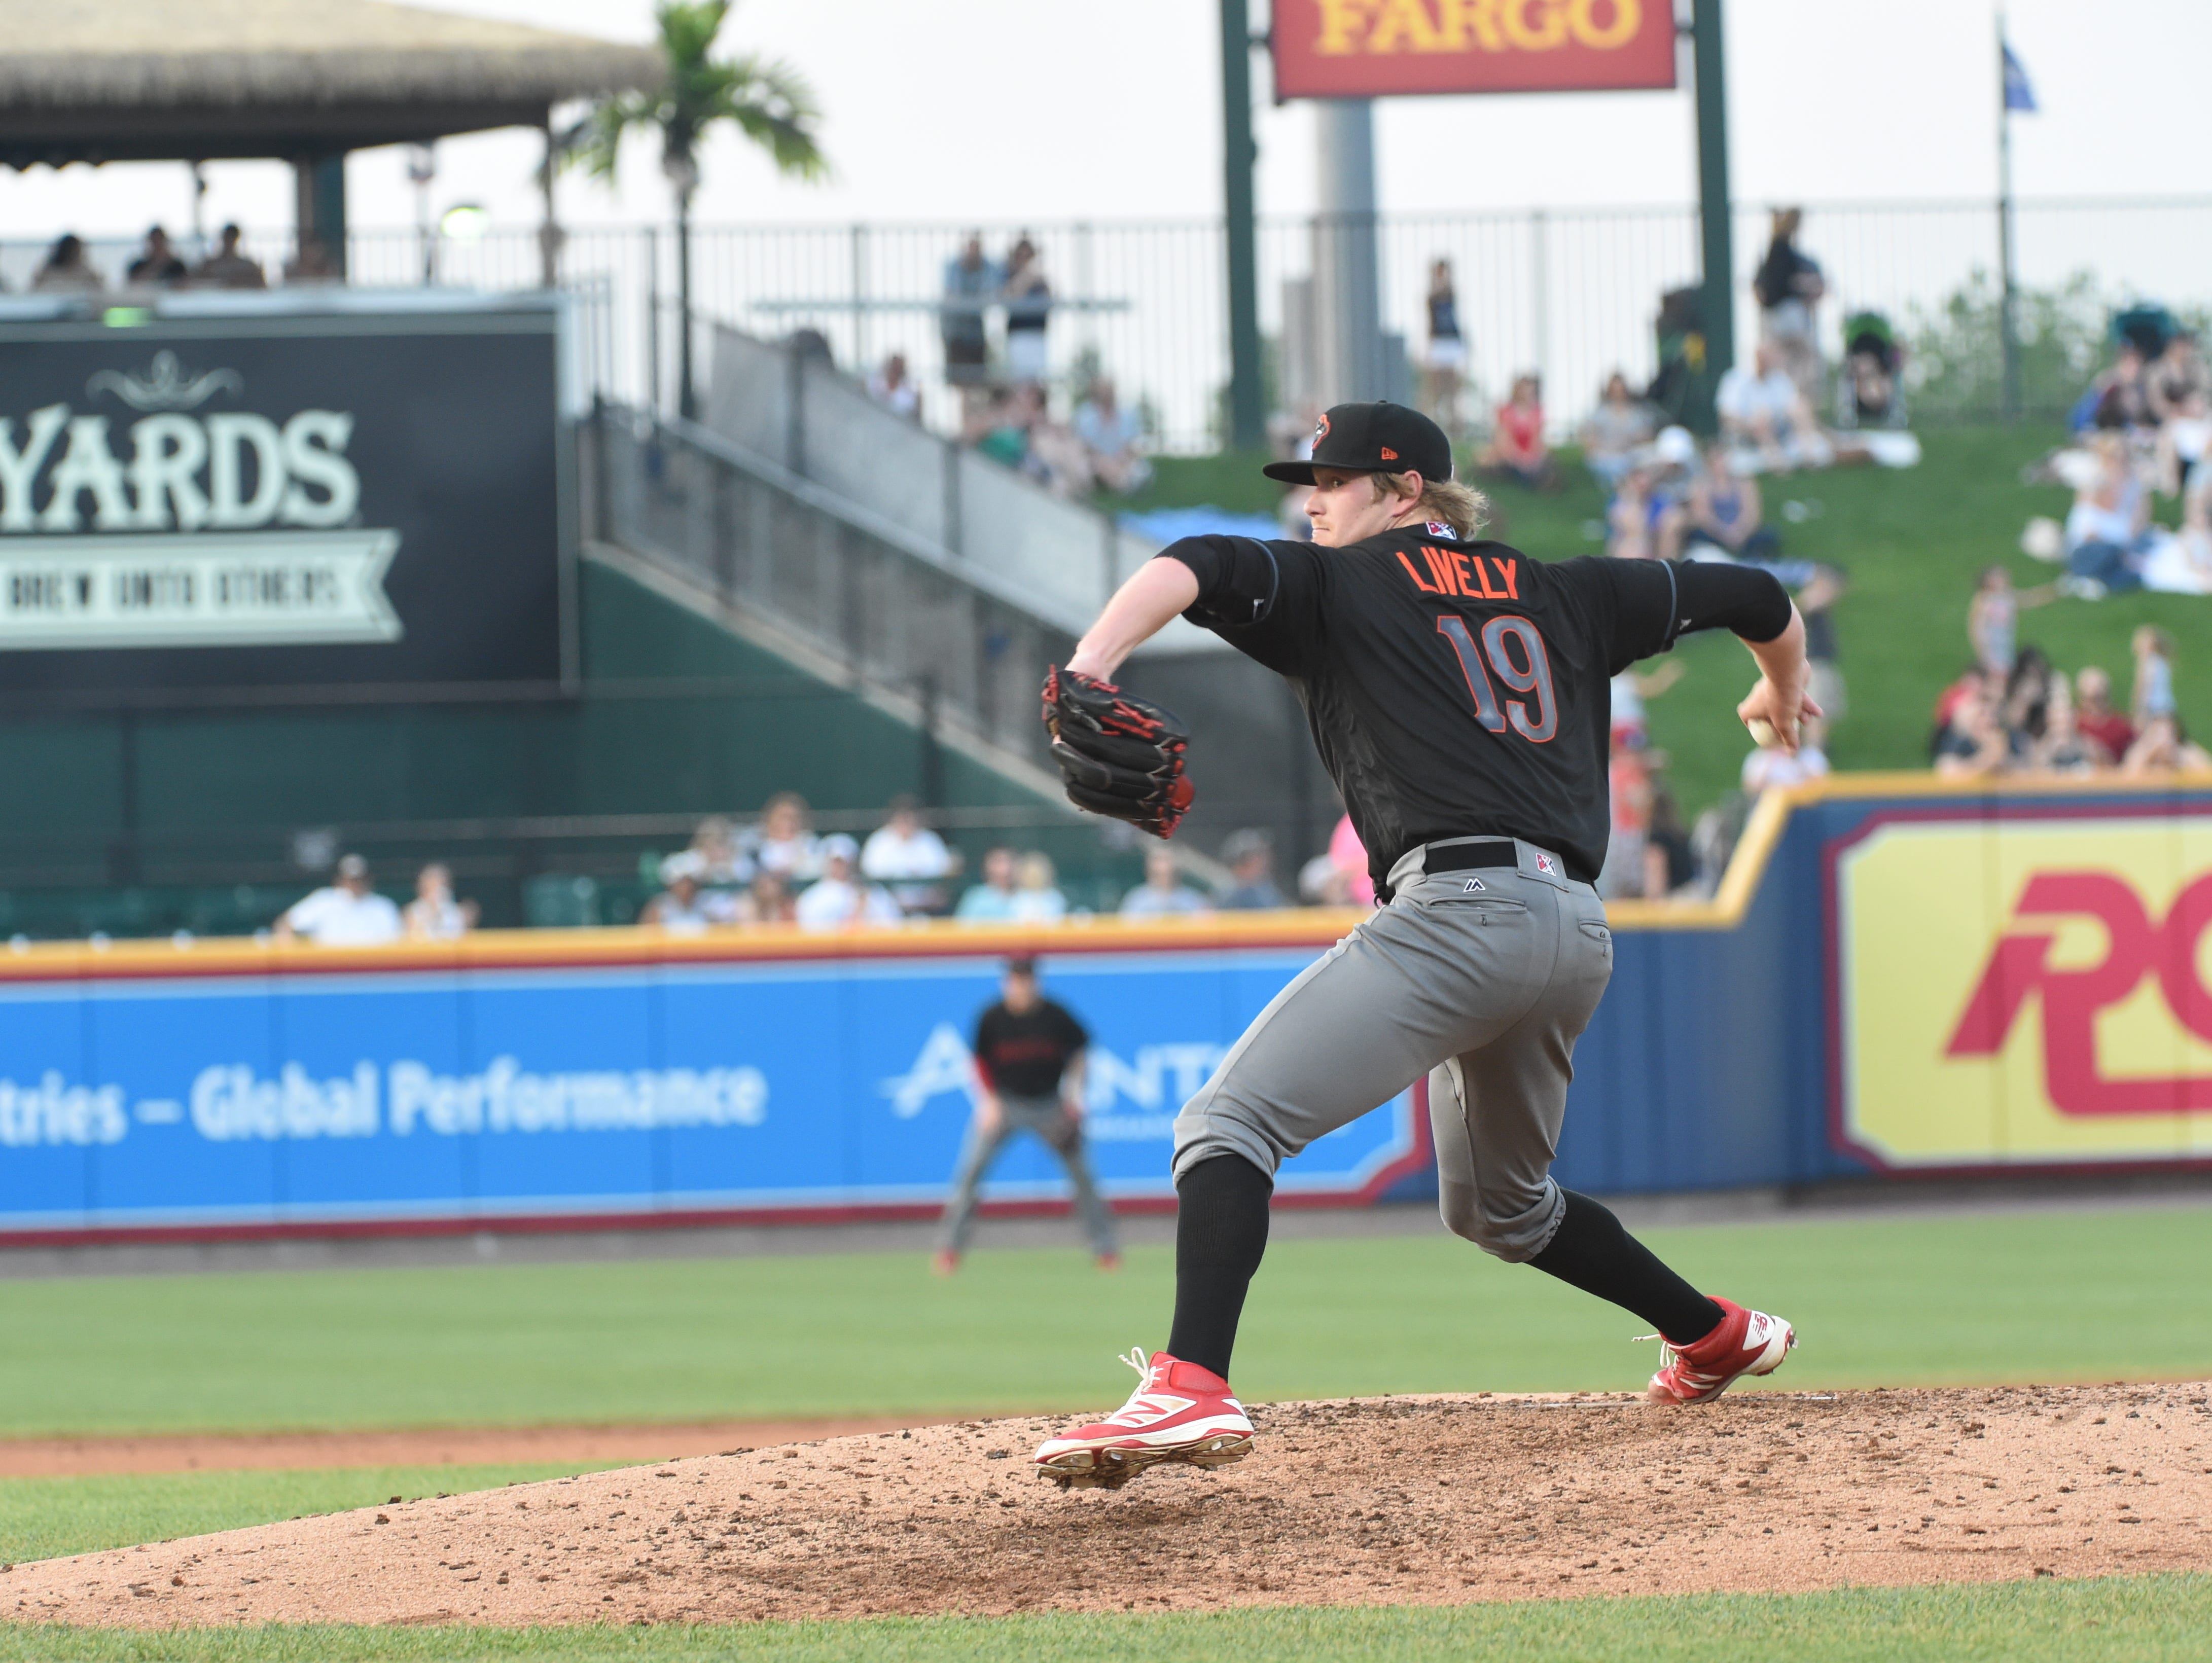 Gulf Breeze's Ben Lively joined the Lehigh Valley IronPigs, the Phillies' Triple-A affiliate weeks ago and earned his second pitcher of the week award Monday in two different leagues after picking up his 10th win this season.